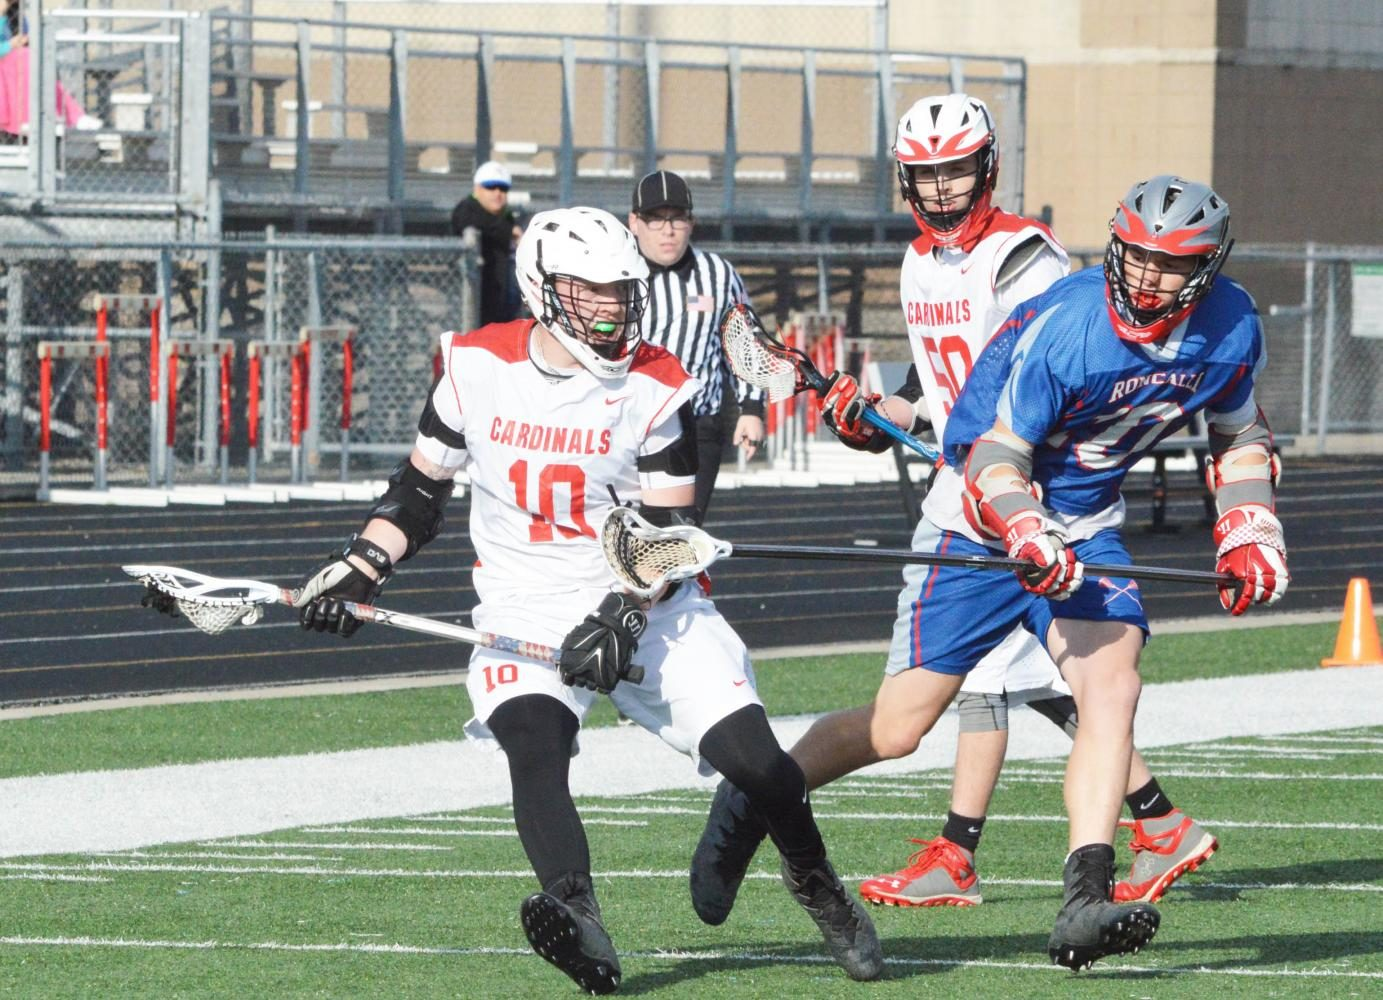 Junior Dayton Fries cradles the ball as he runs down the field on Friday, May 5 against the Roncalli Rebels.